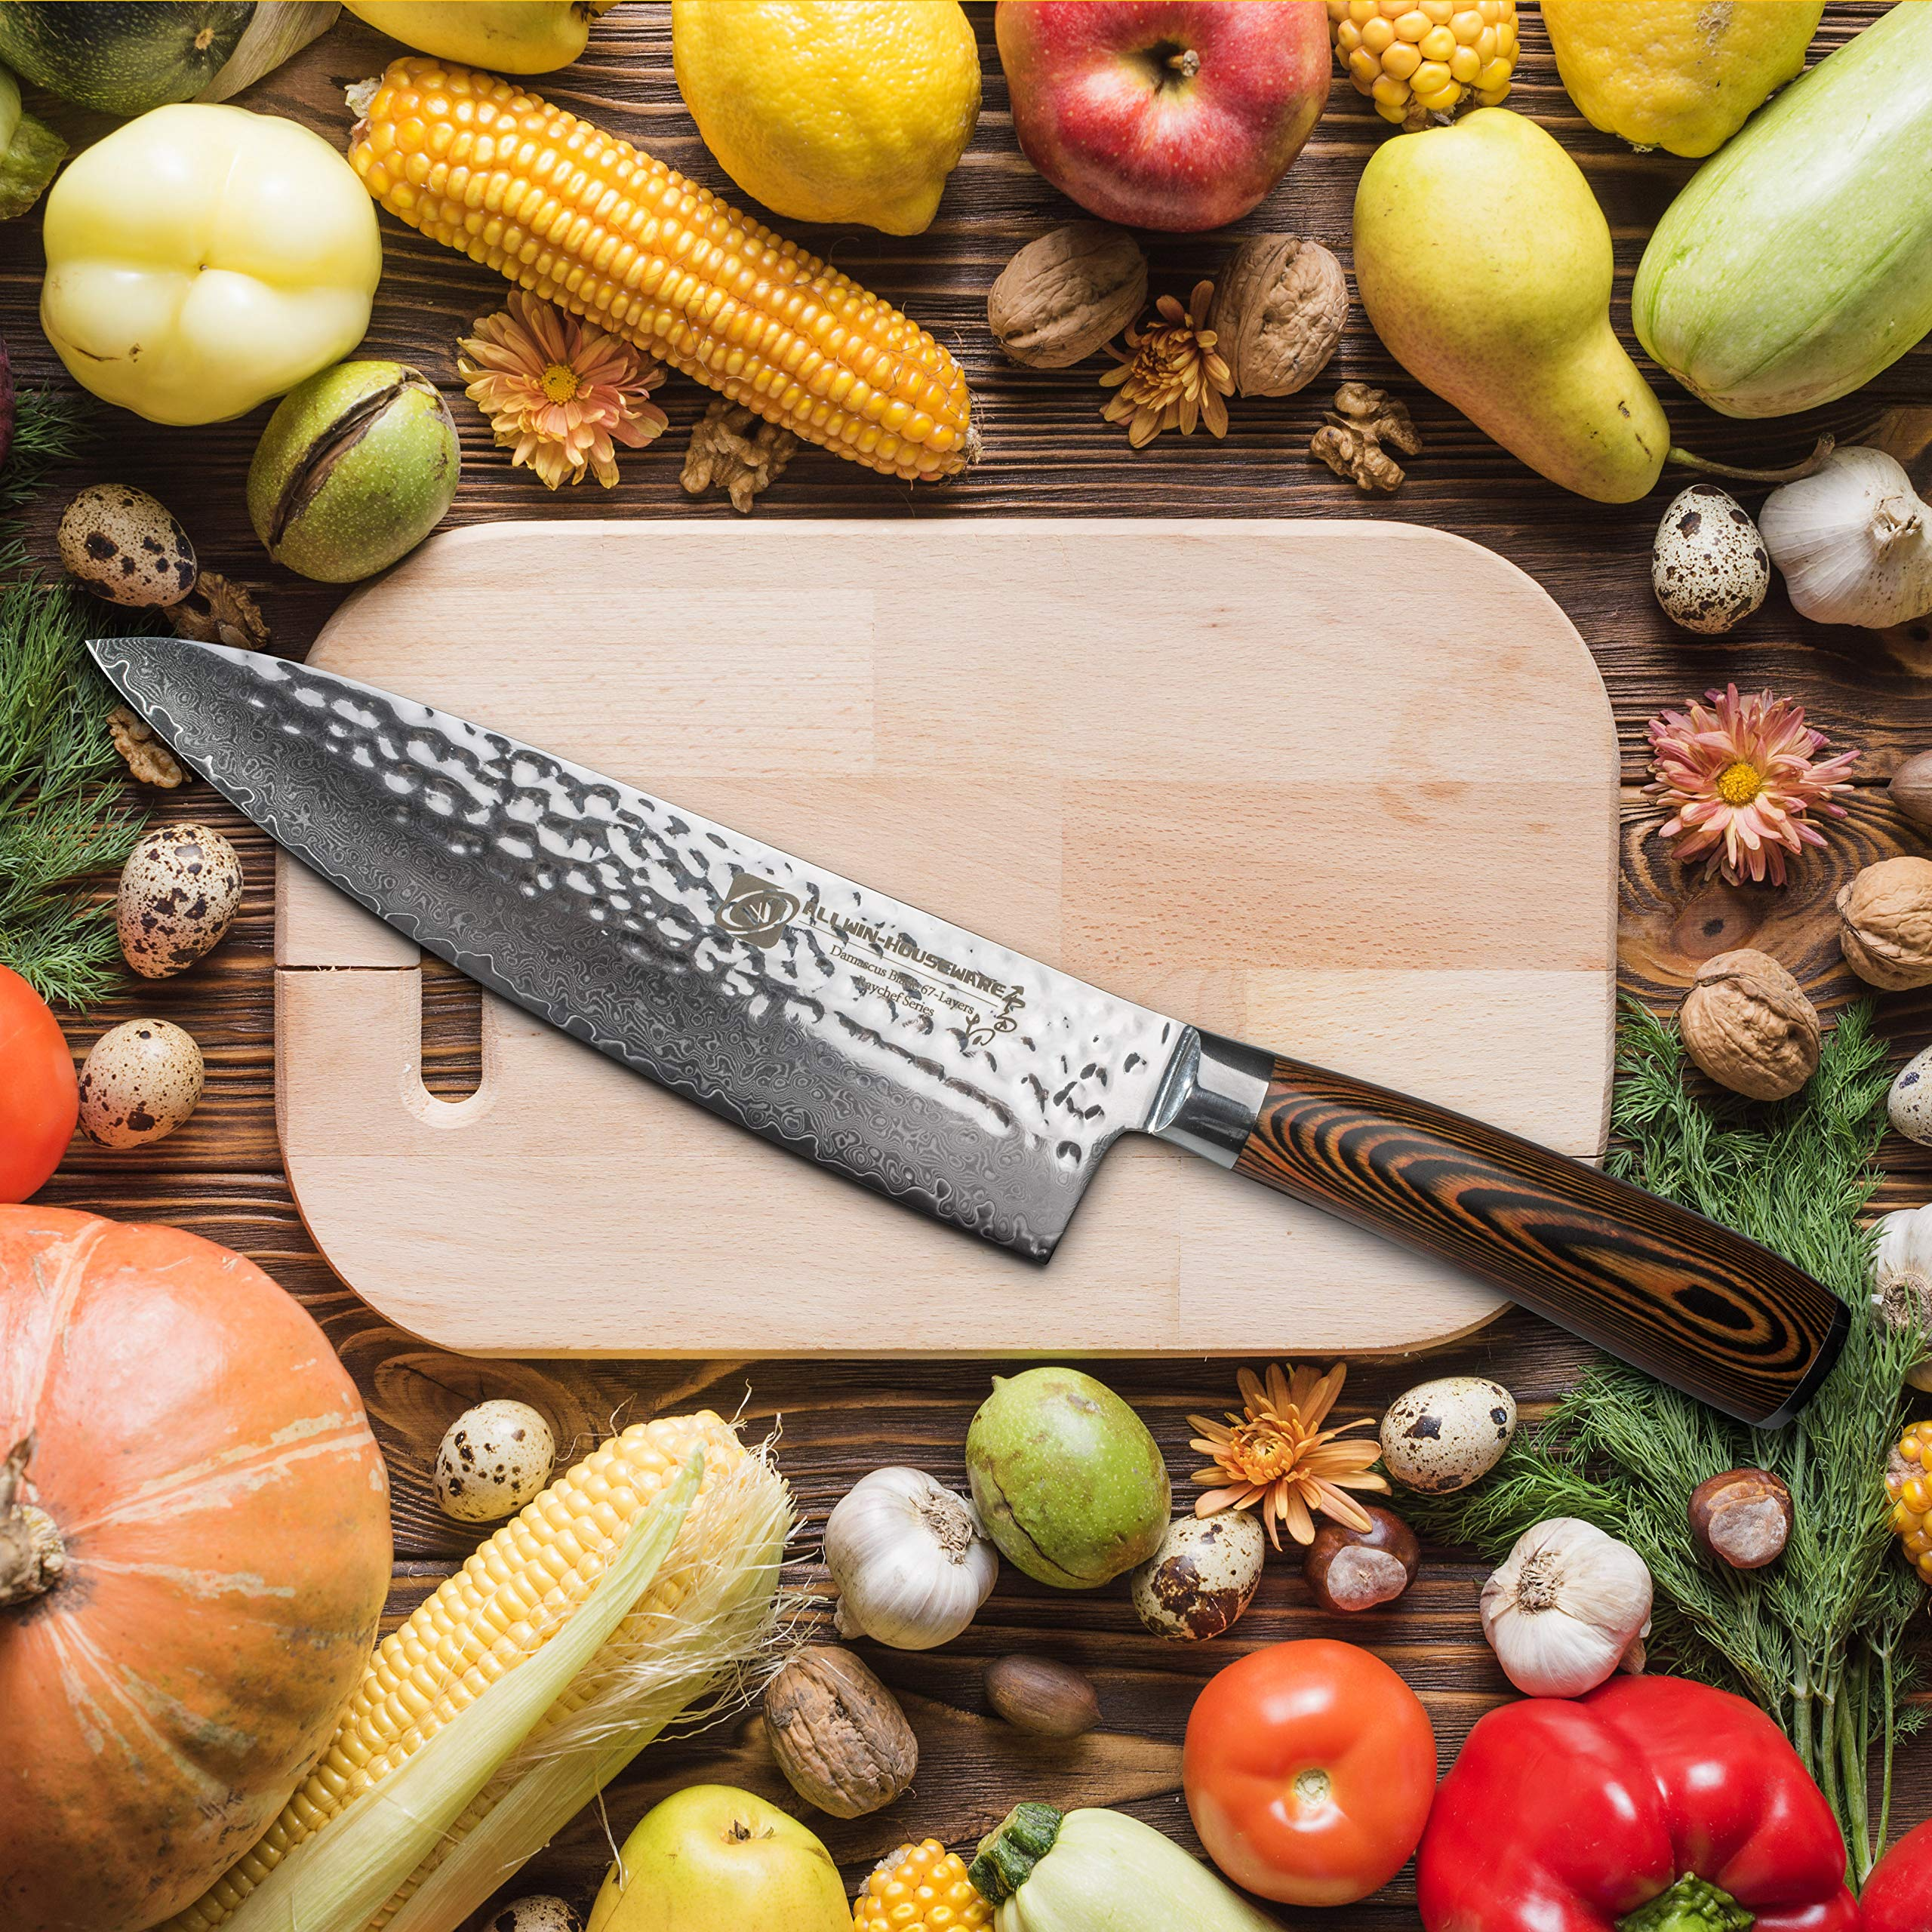 Damascus Chef Knife with Japanese VG10 Super Steel Core, Professional 67-layer Handmade 8'' PAKKA Wood Handle Damascus Chefs Knife by ALLWIN-HOUSEWARE W (Image #5)